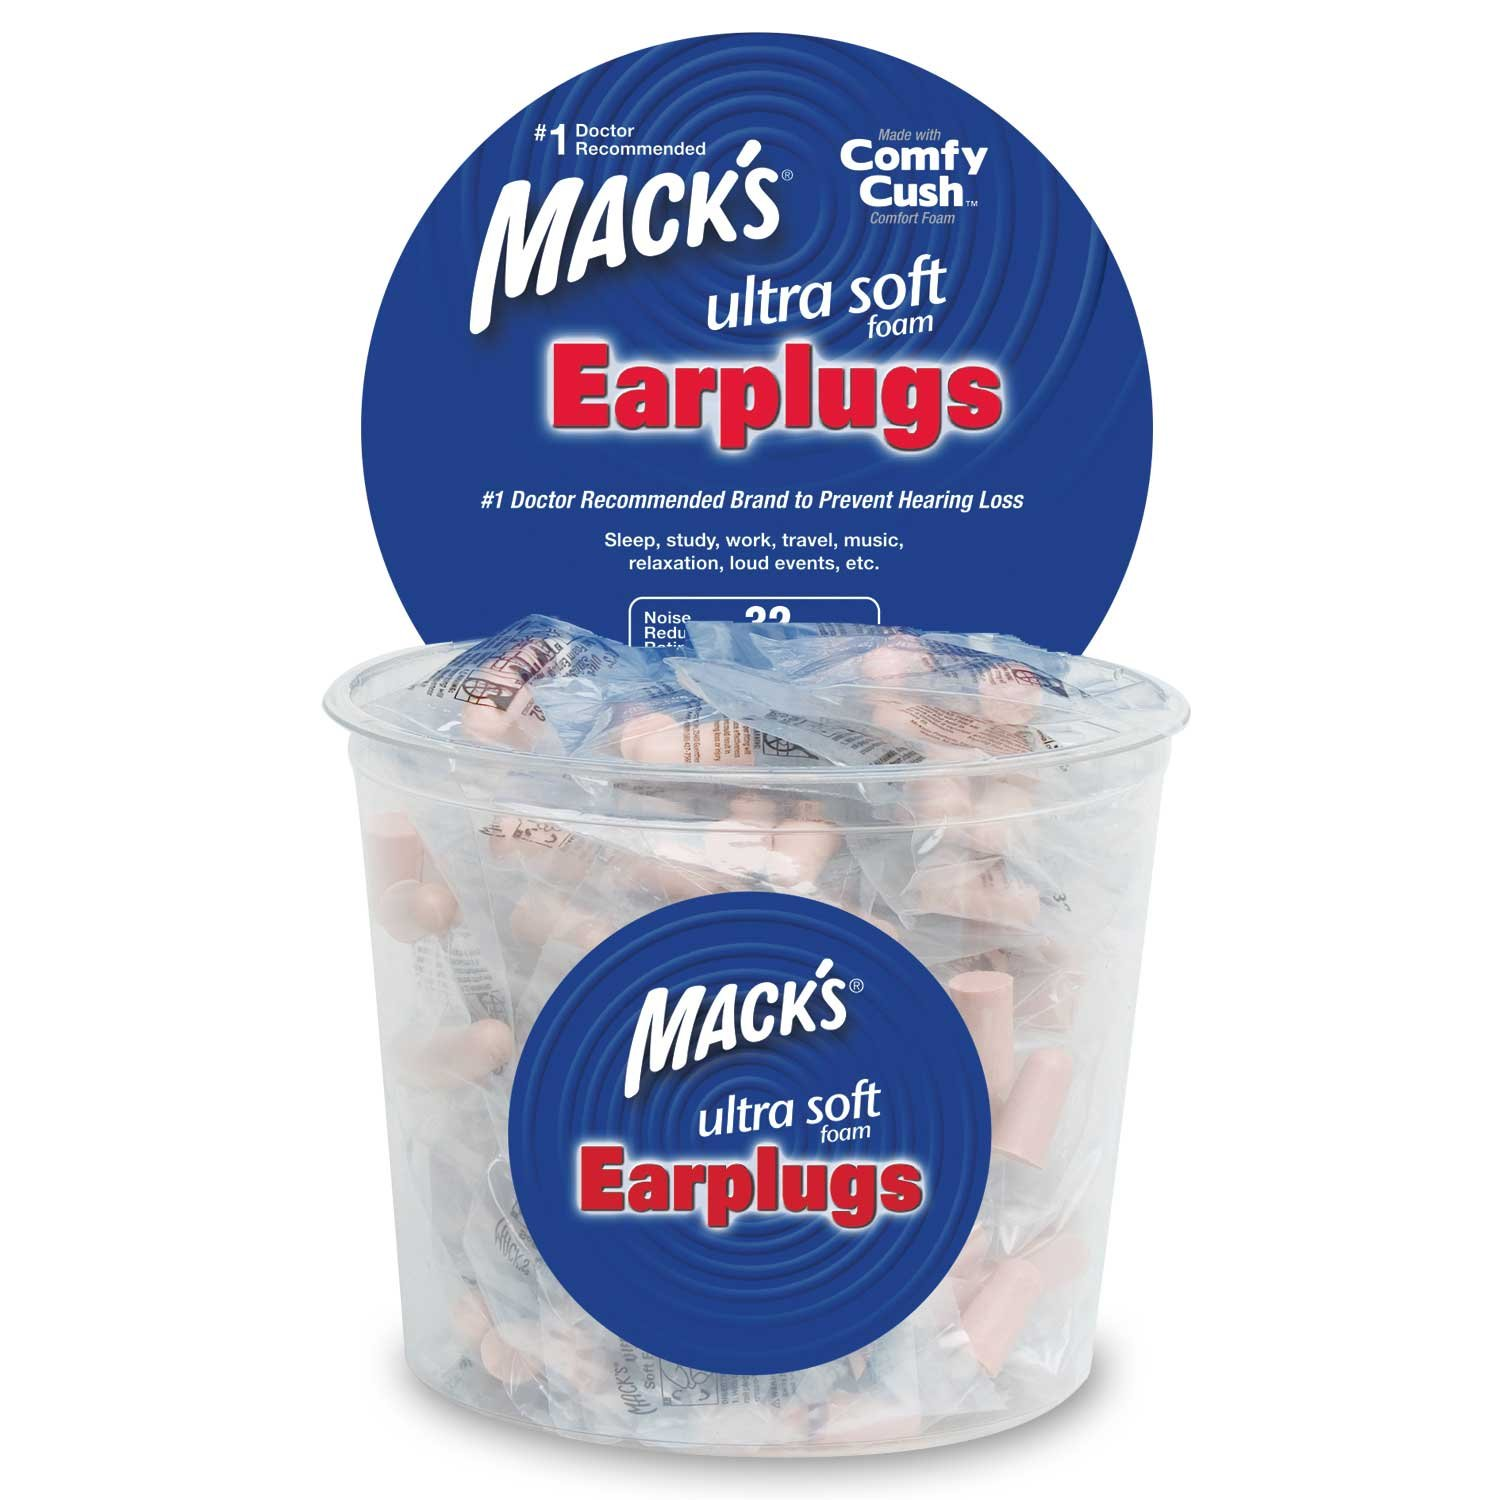 Mack's Ultra Soft Foam Earplugs, 100 Pair - Individually Wrapped - 32dB Highest NRR, Comfortable Ear Plugs for Sleeping, Snoring, Work, Travel and Loud Events by Mack's (Image #1)